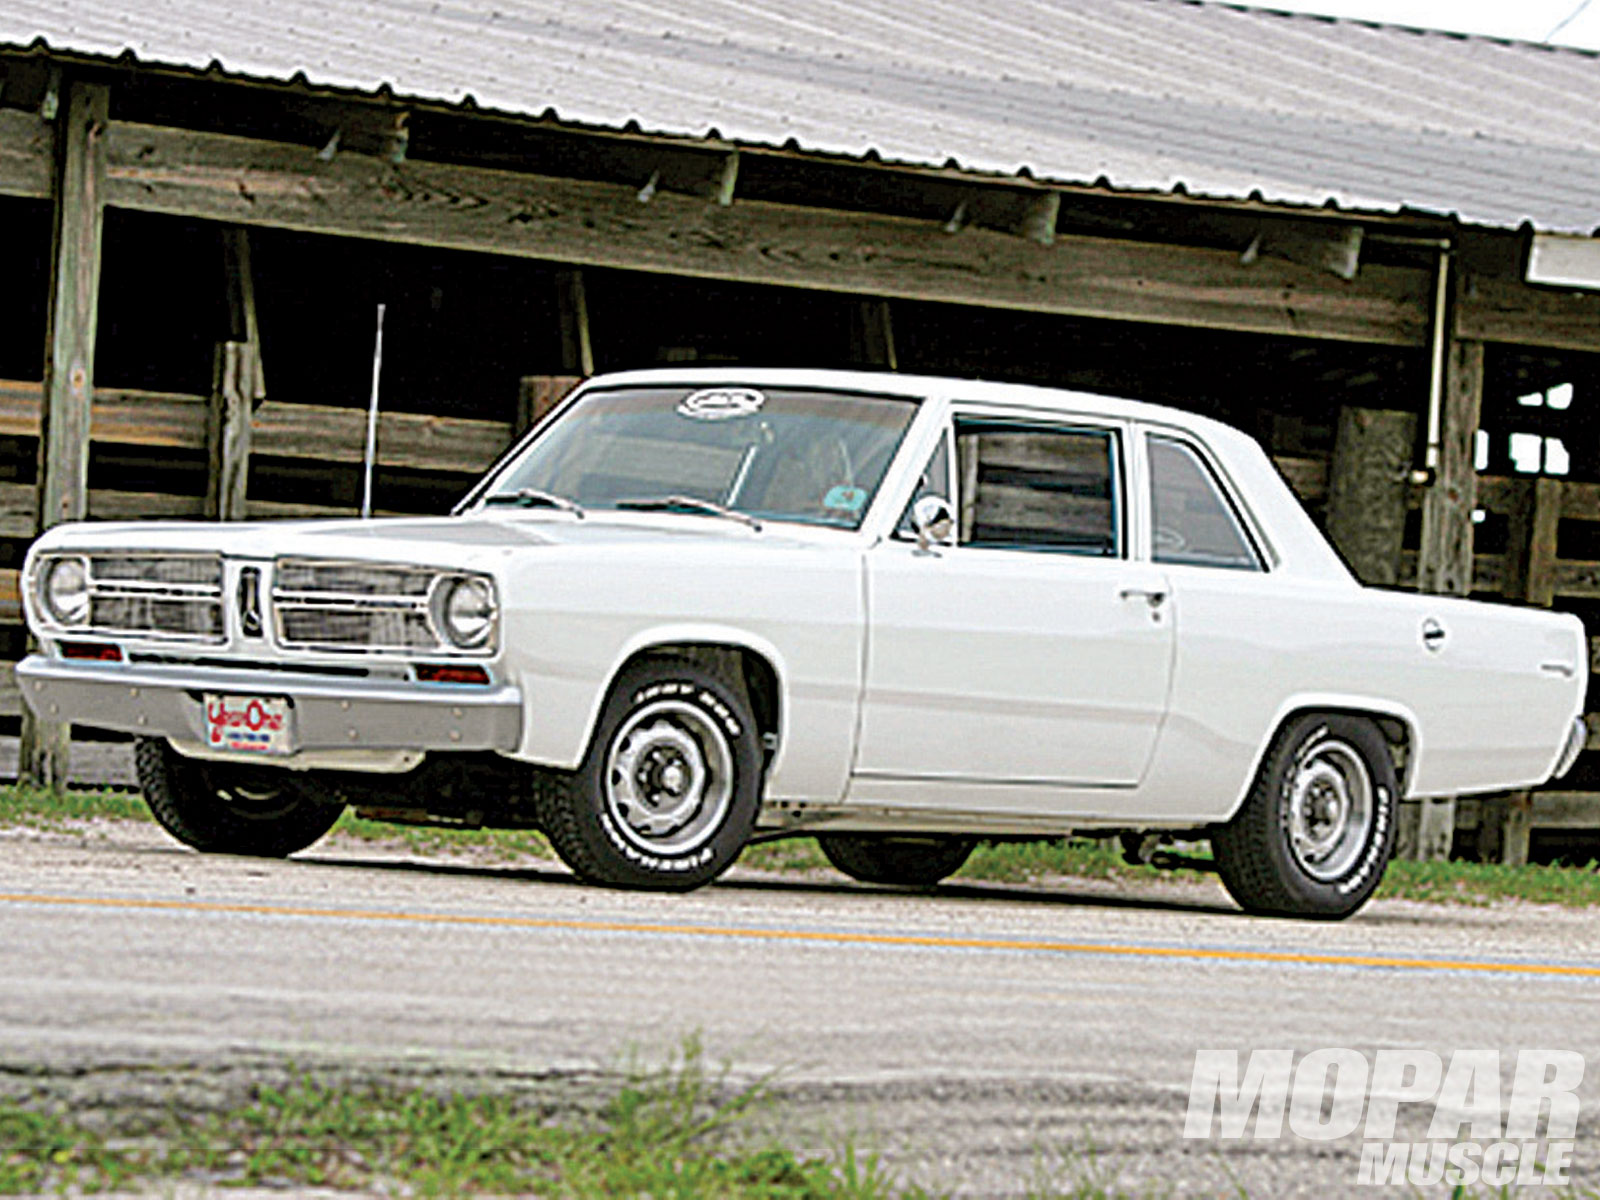 Plymouth Valiant #20